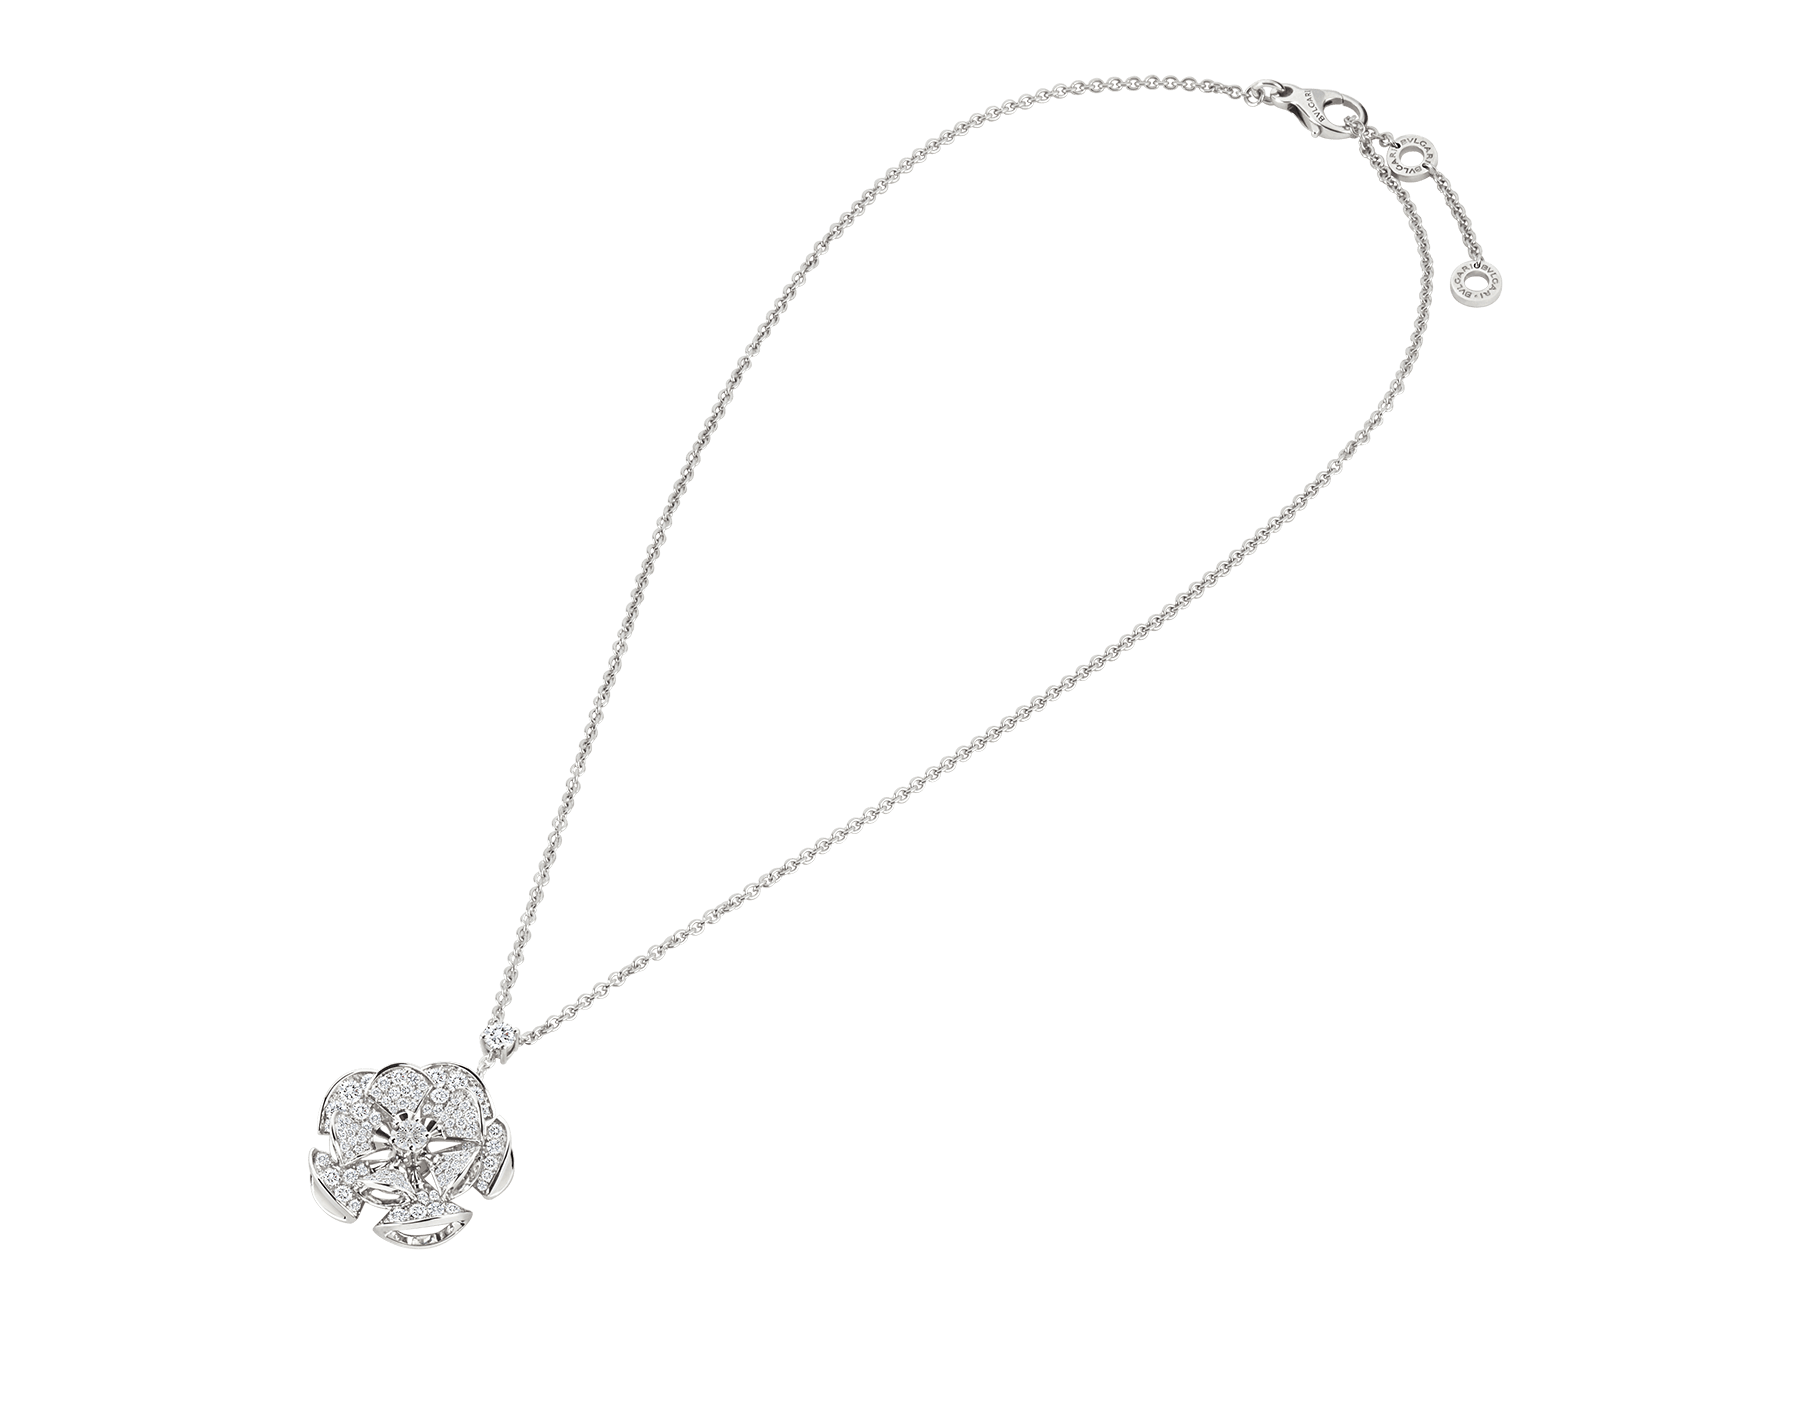 DIVAS' DREAM necklace in 18 kt white gold with a diamond on the chain and 18 kt white gold pendant set with central diamond and full pavé diamonds. 350854 image 2